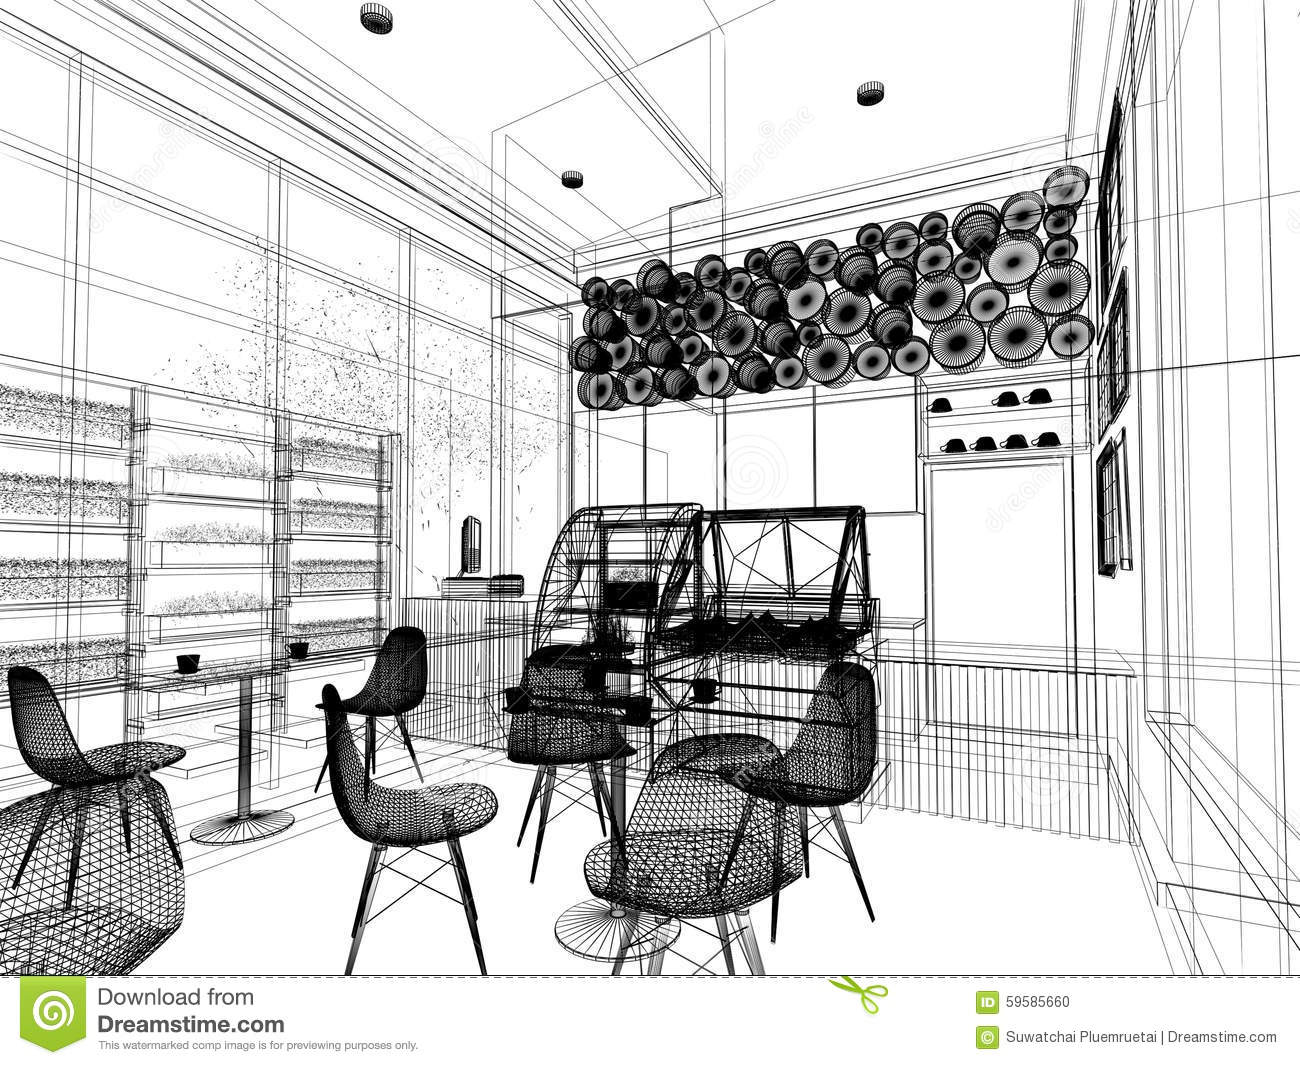 Sketch Design Of Coffee Shop  Stock Photo - Image 59585660